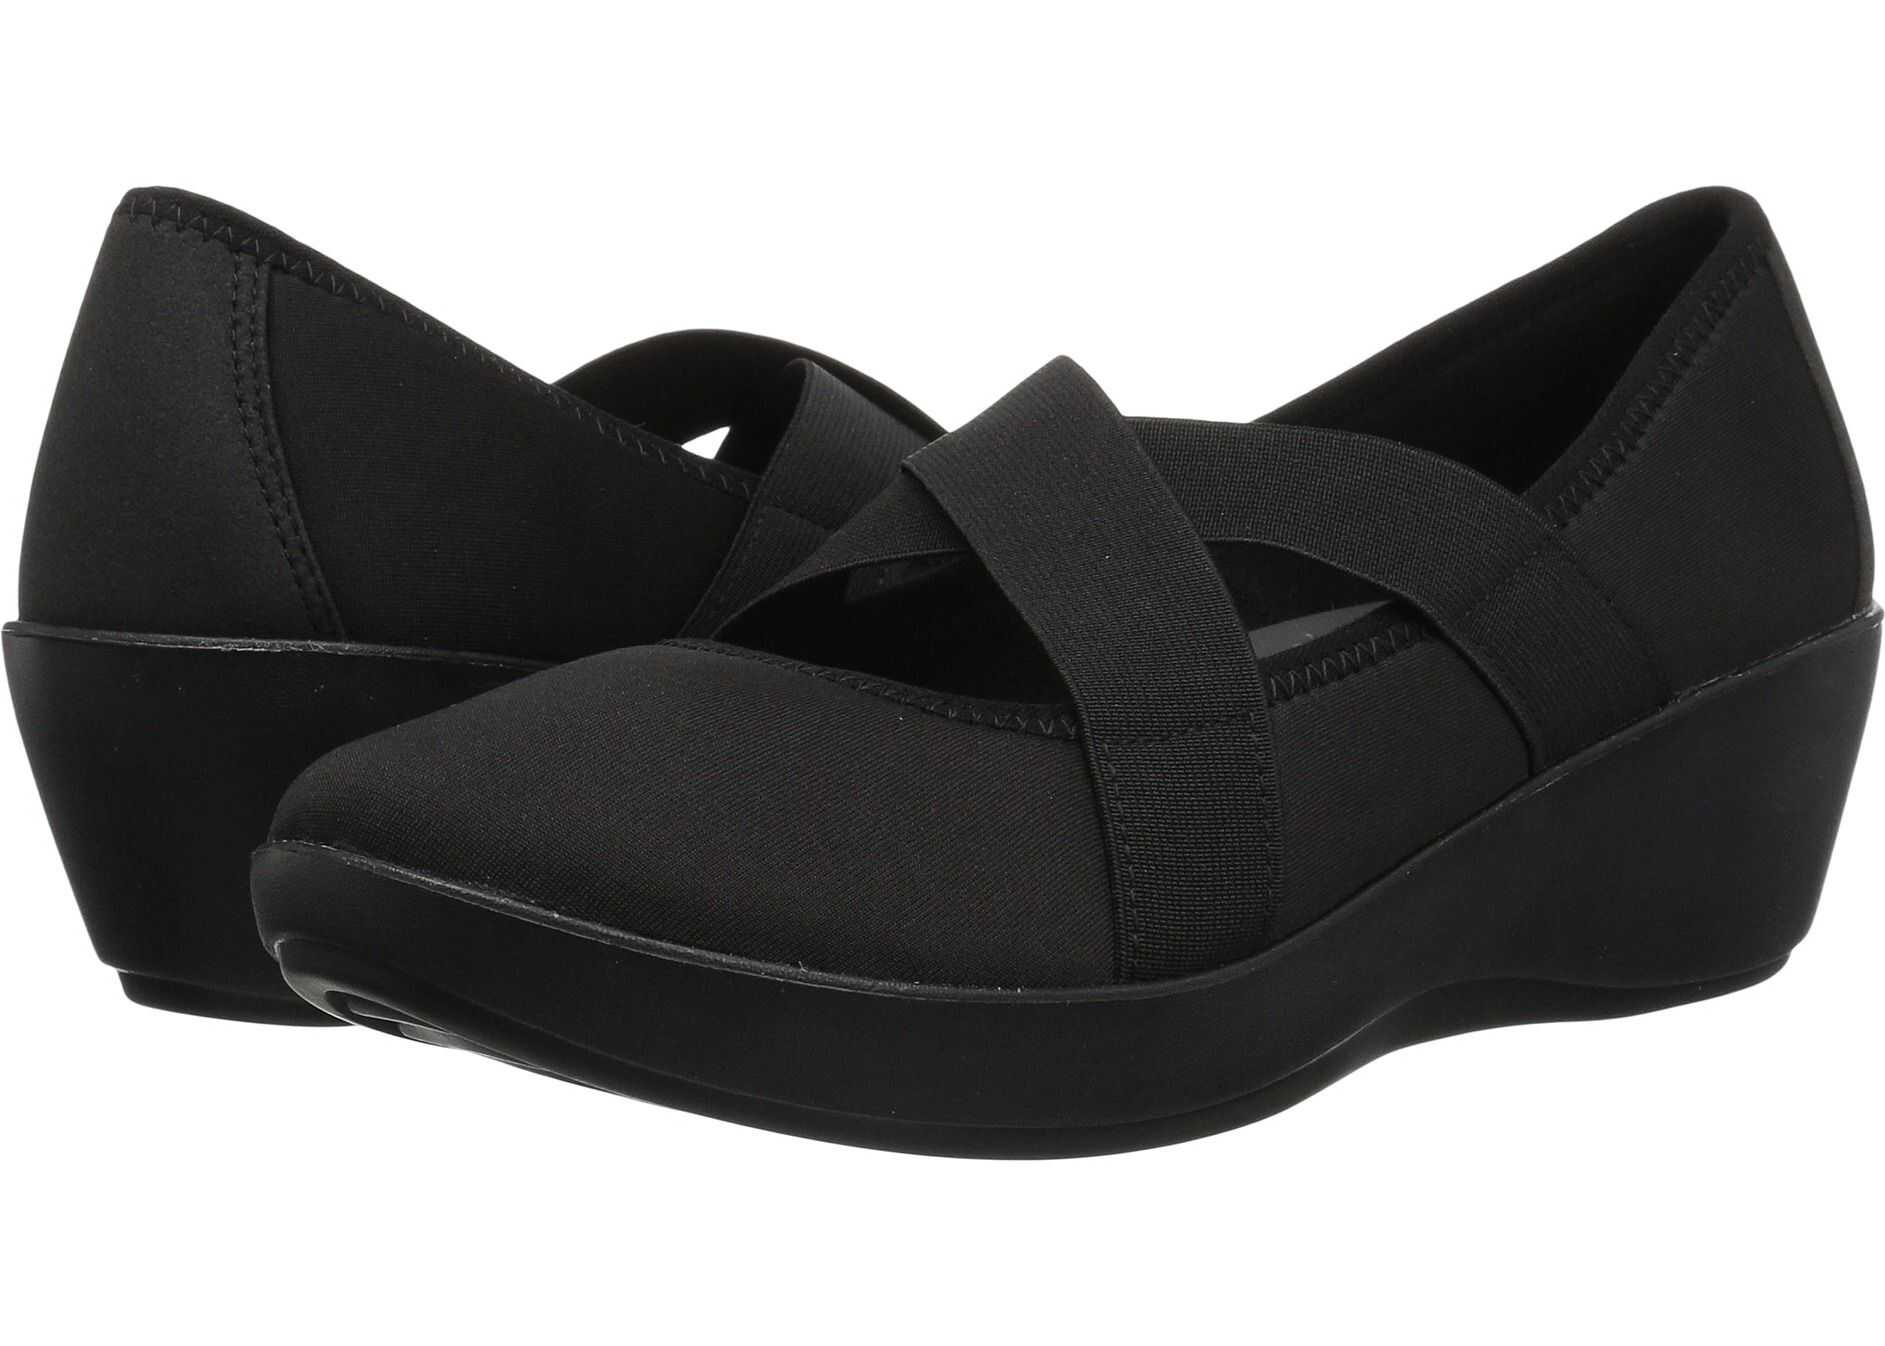 Crocs Busy Day Strappy Wedge Black/Black